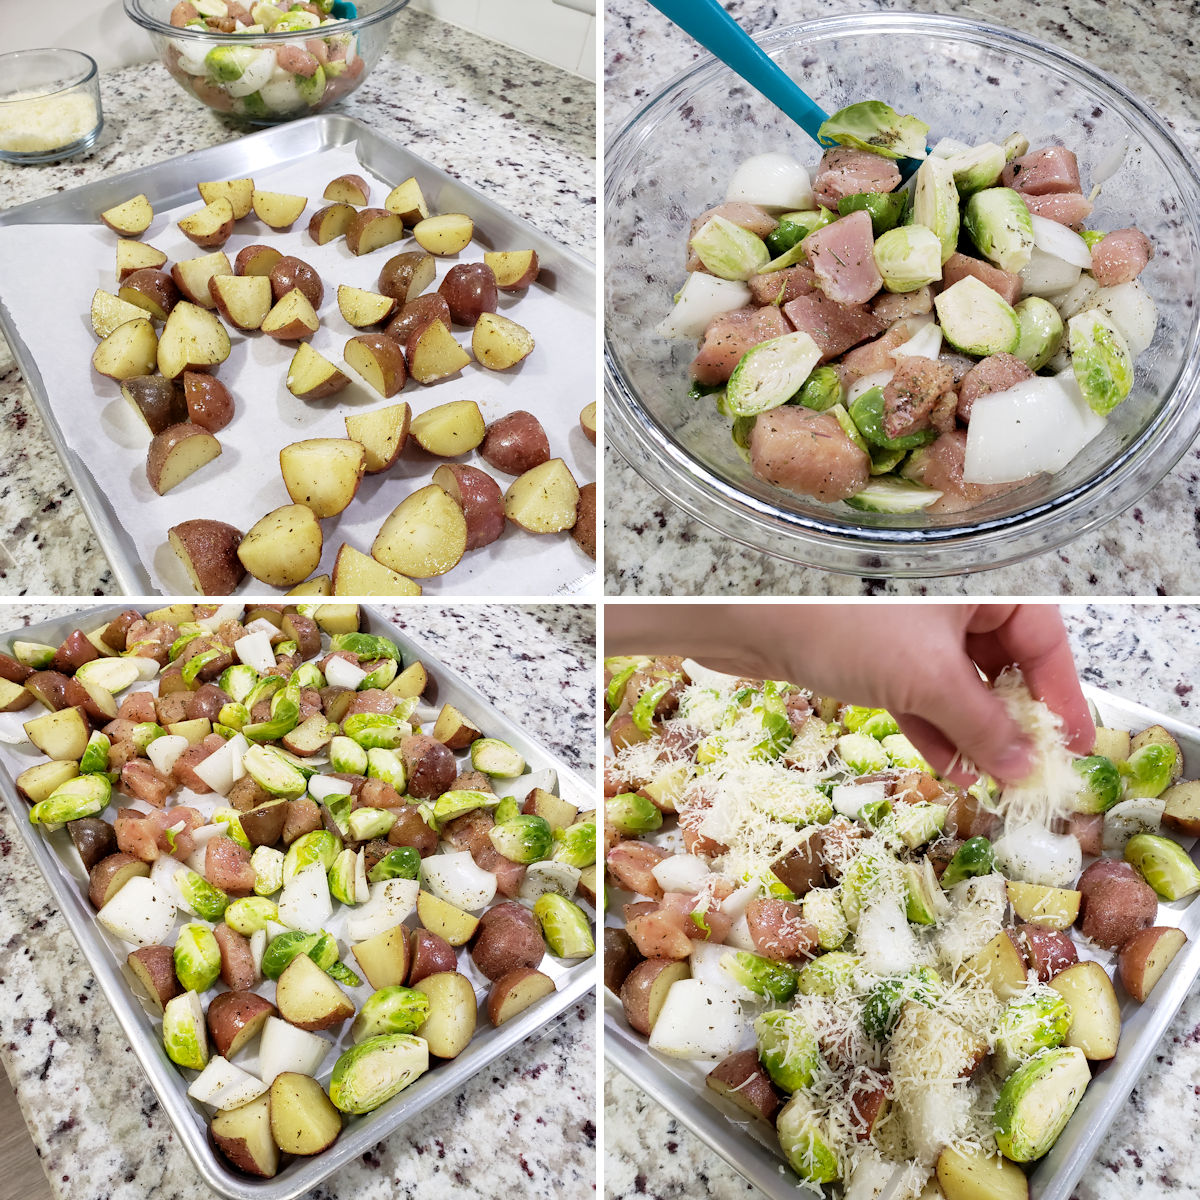 Assembling a sheet pan filled with chicken, brussels sprouts, and potatoes.